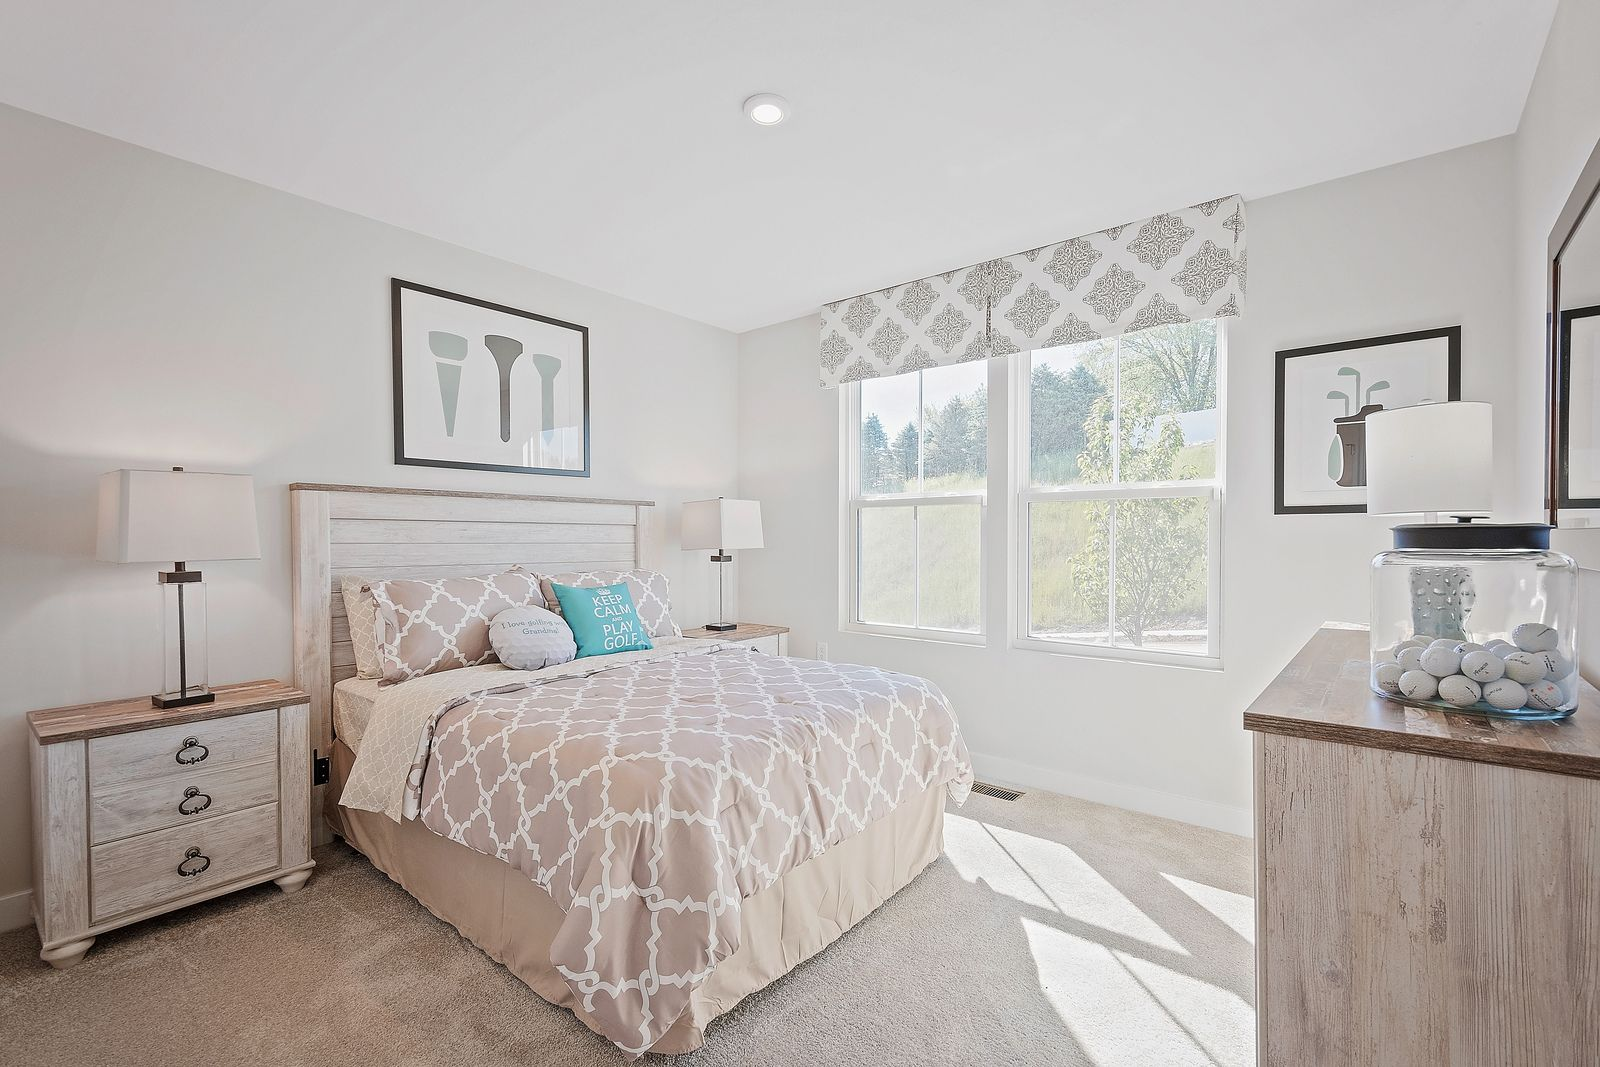 Bedroom featured in the Grand Bahama By Ryan Homes in Cleveland, OH